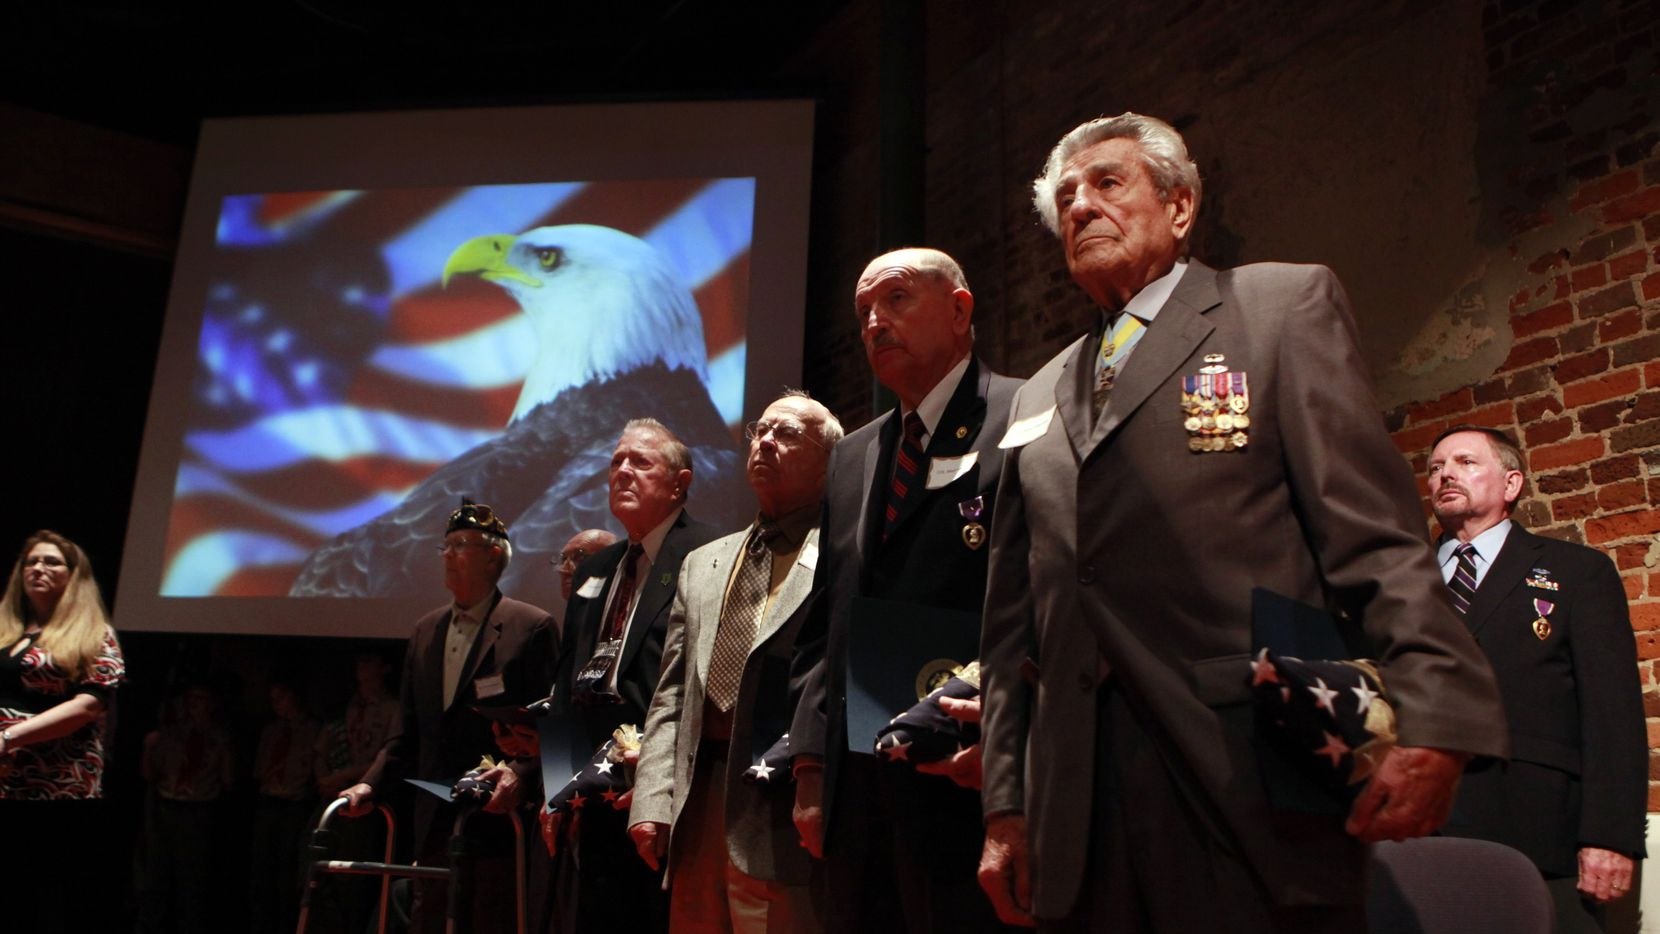 World War ll veteran James Megellas (front right) and other Purple Heart recipients, stand during a Purple Heart Recognition Ceremony hosted by Congressman Kenny Marchant, in Grapevine, Texas on in November, 2009.